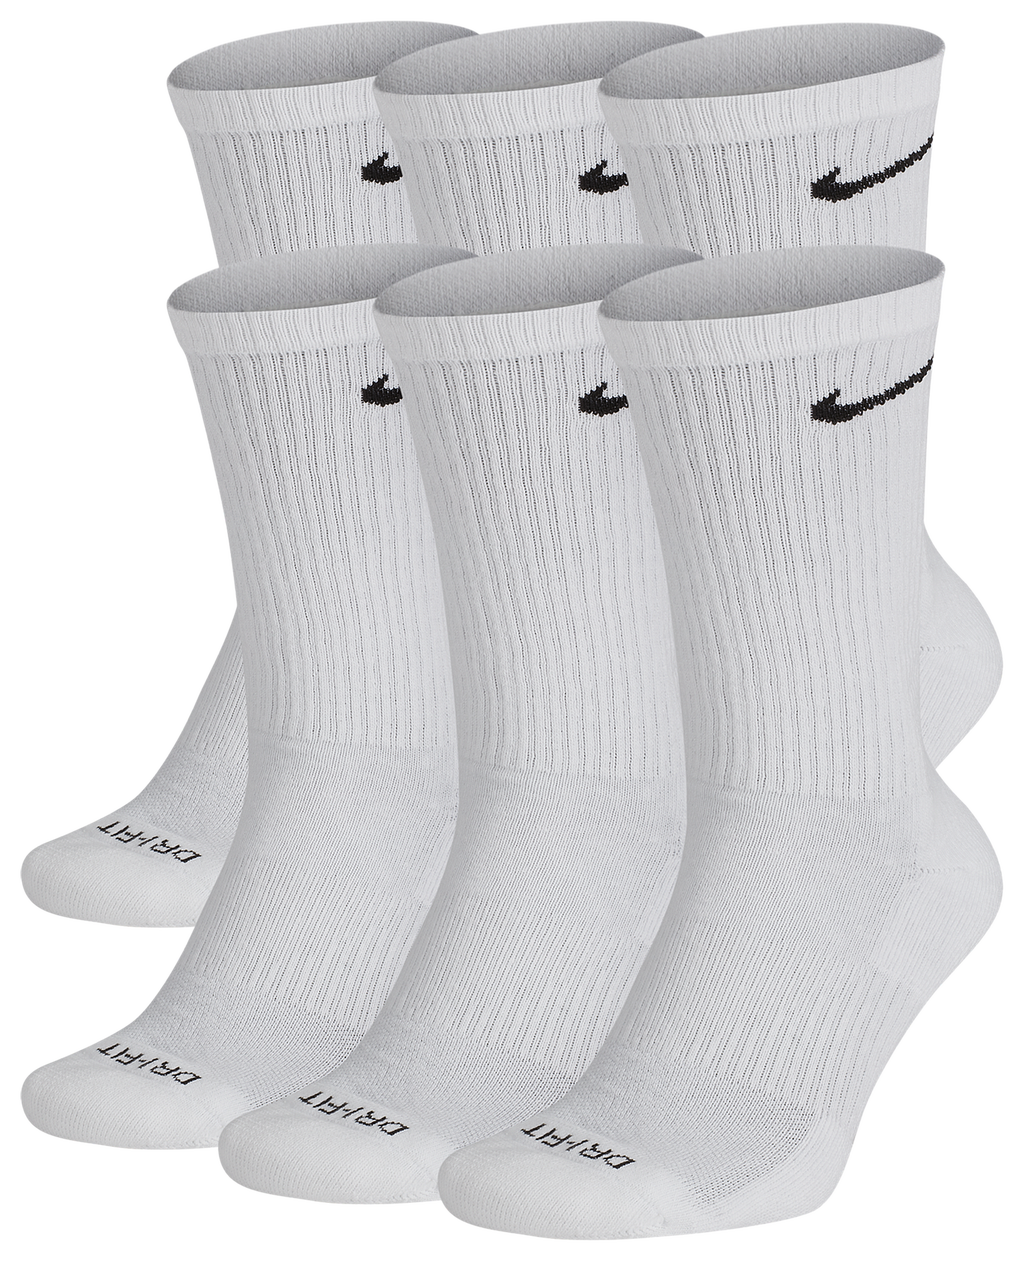 Nike 6 Pack Dri Fit Plus Crew Socks by Eastbay